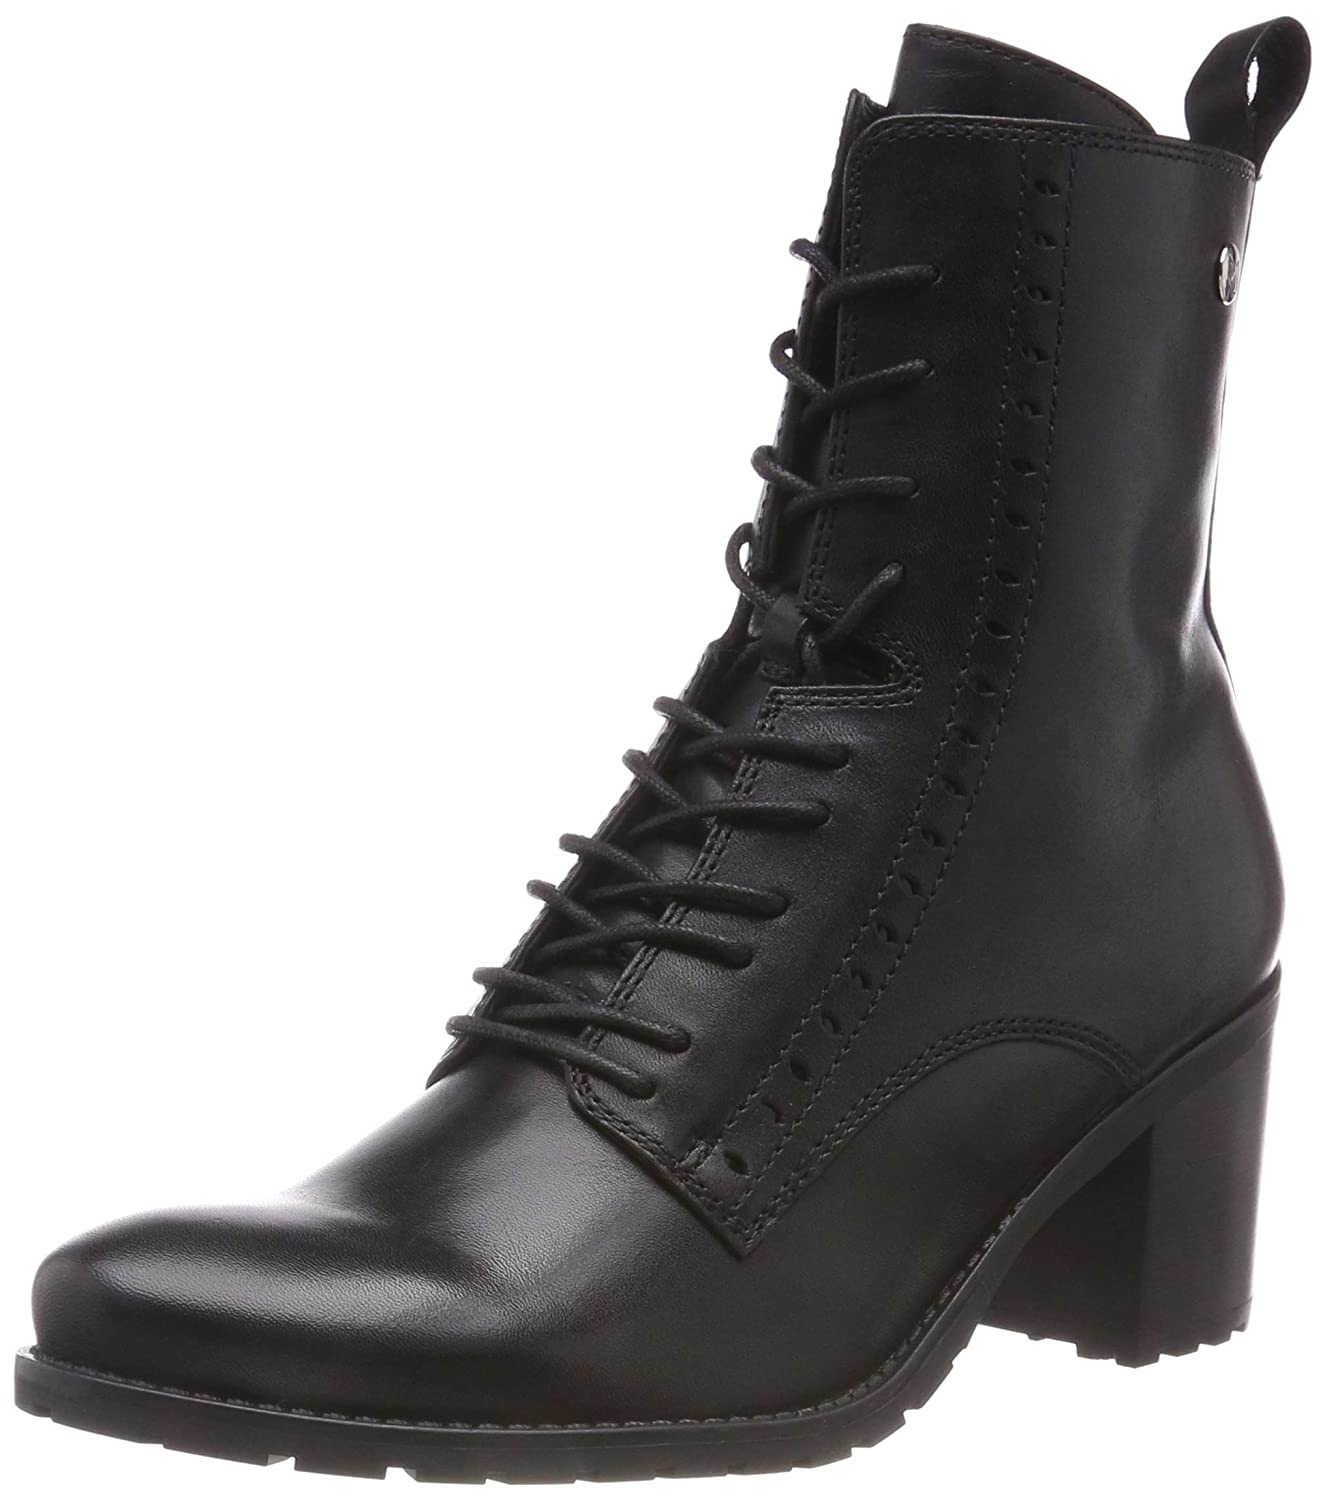 Caprice 9-9-25207-21 022, Bottes Rangers Femme B0722PT14Z Noir (Black Nappa Nappa Rangers 22) 350af92 - conorscully.space